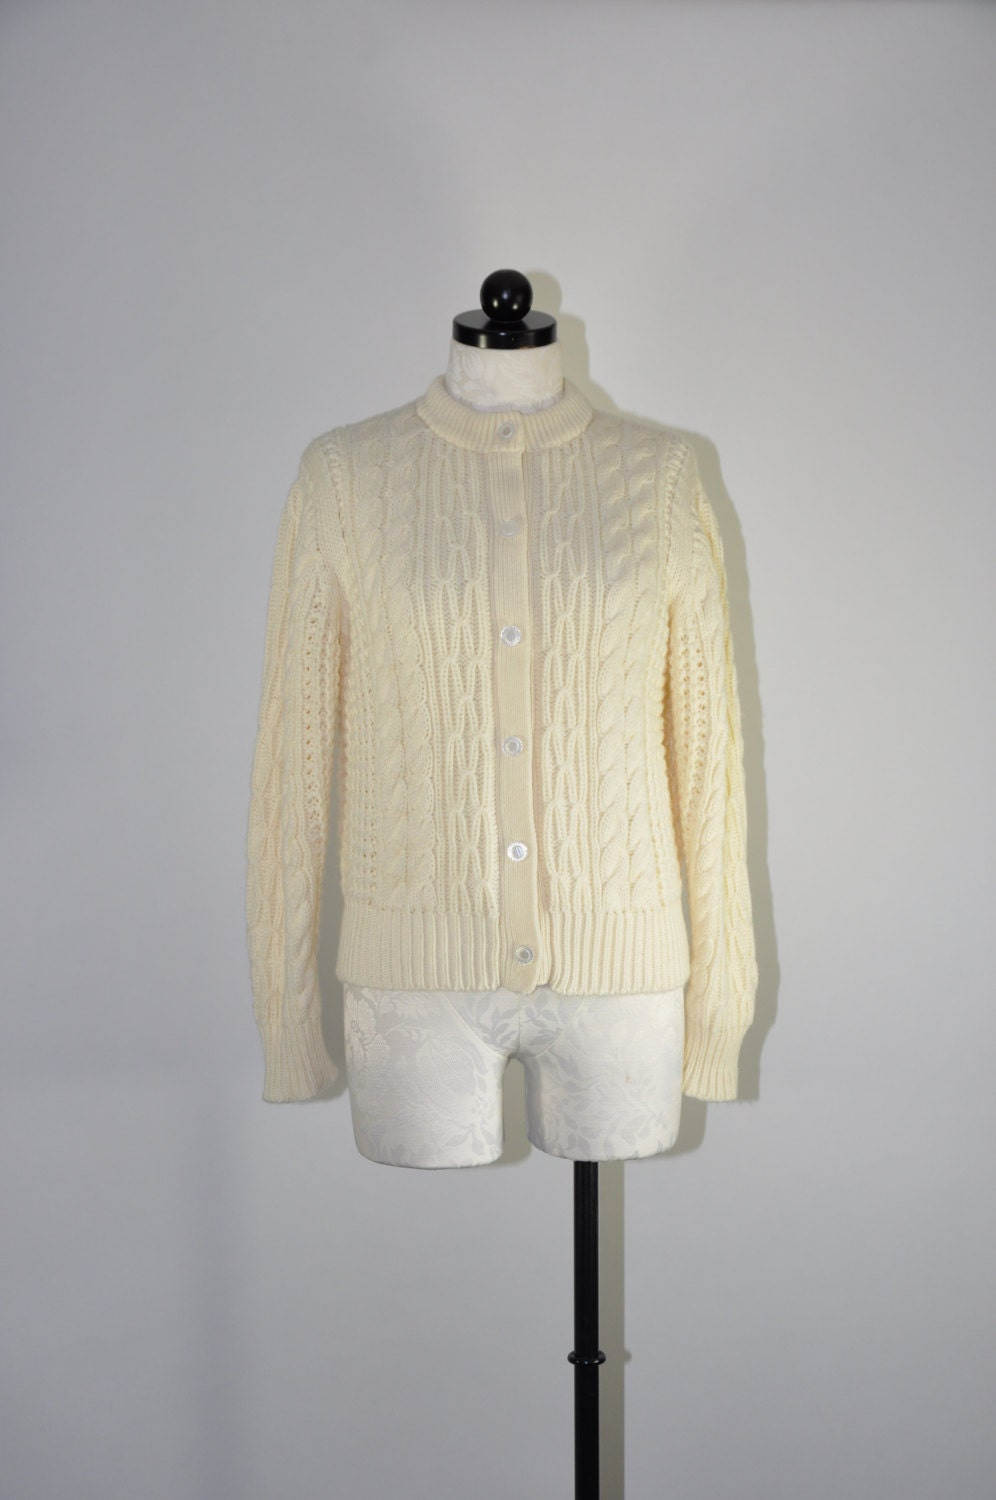 70s cream cable knit cardigan / vintage chunky fisherman sweater / Diamond Stitch cardigan - QuietUnrest